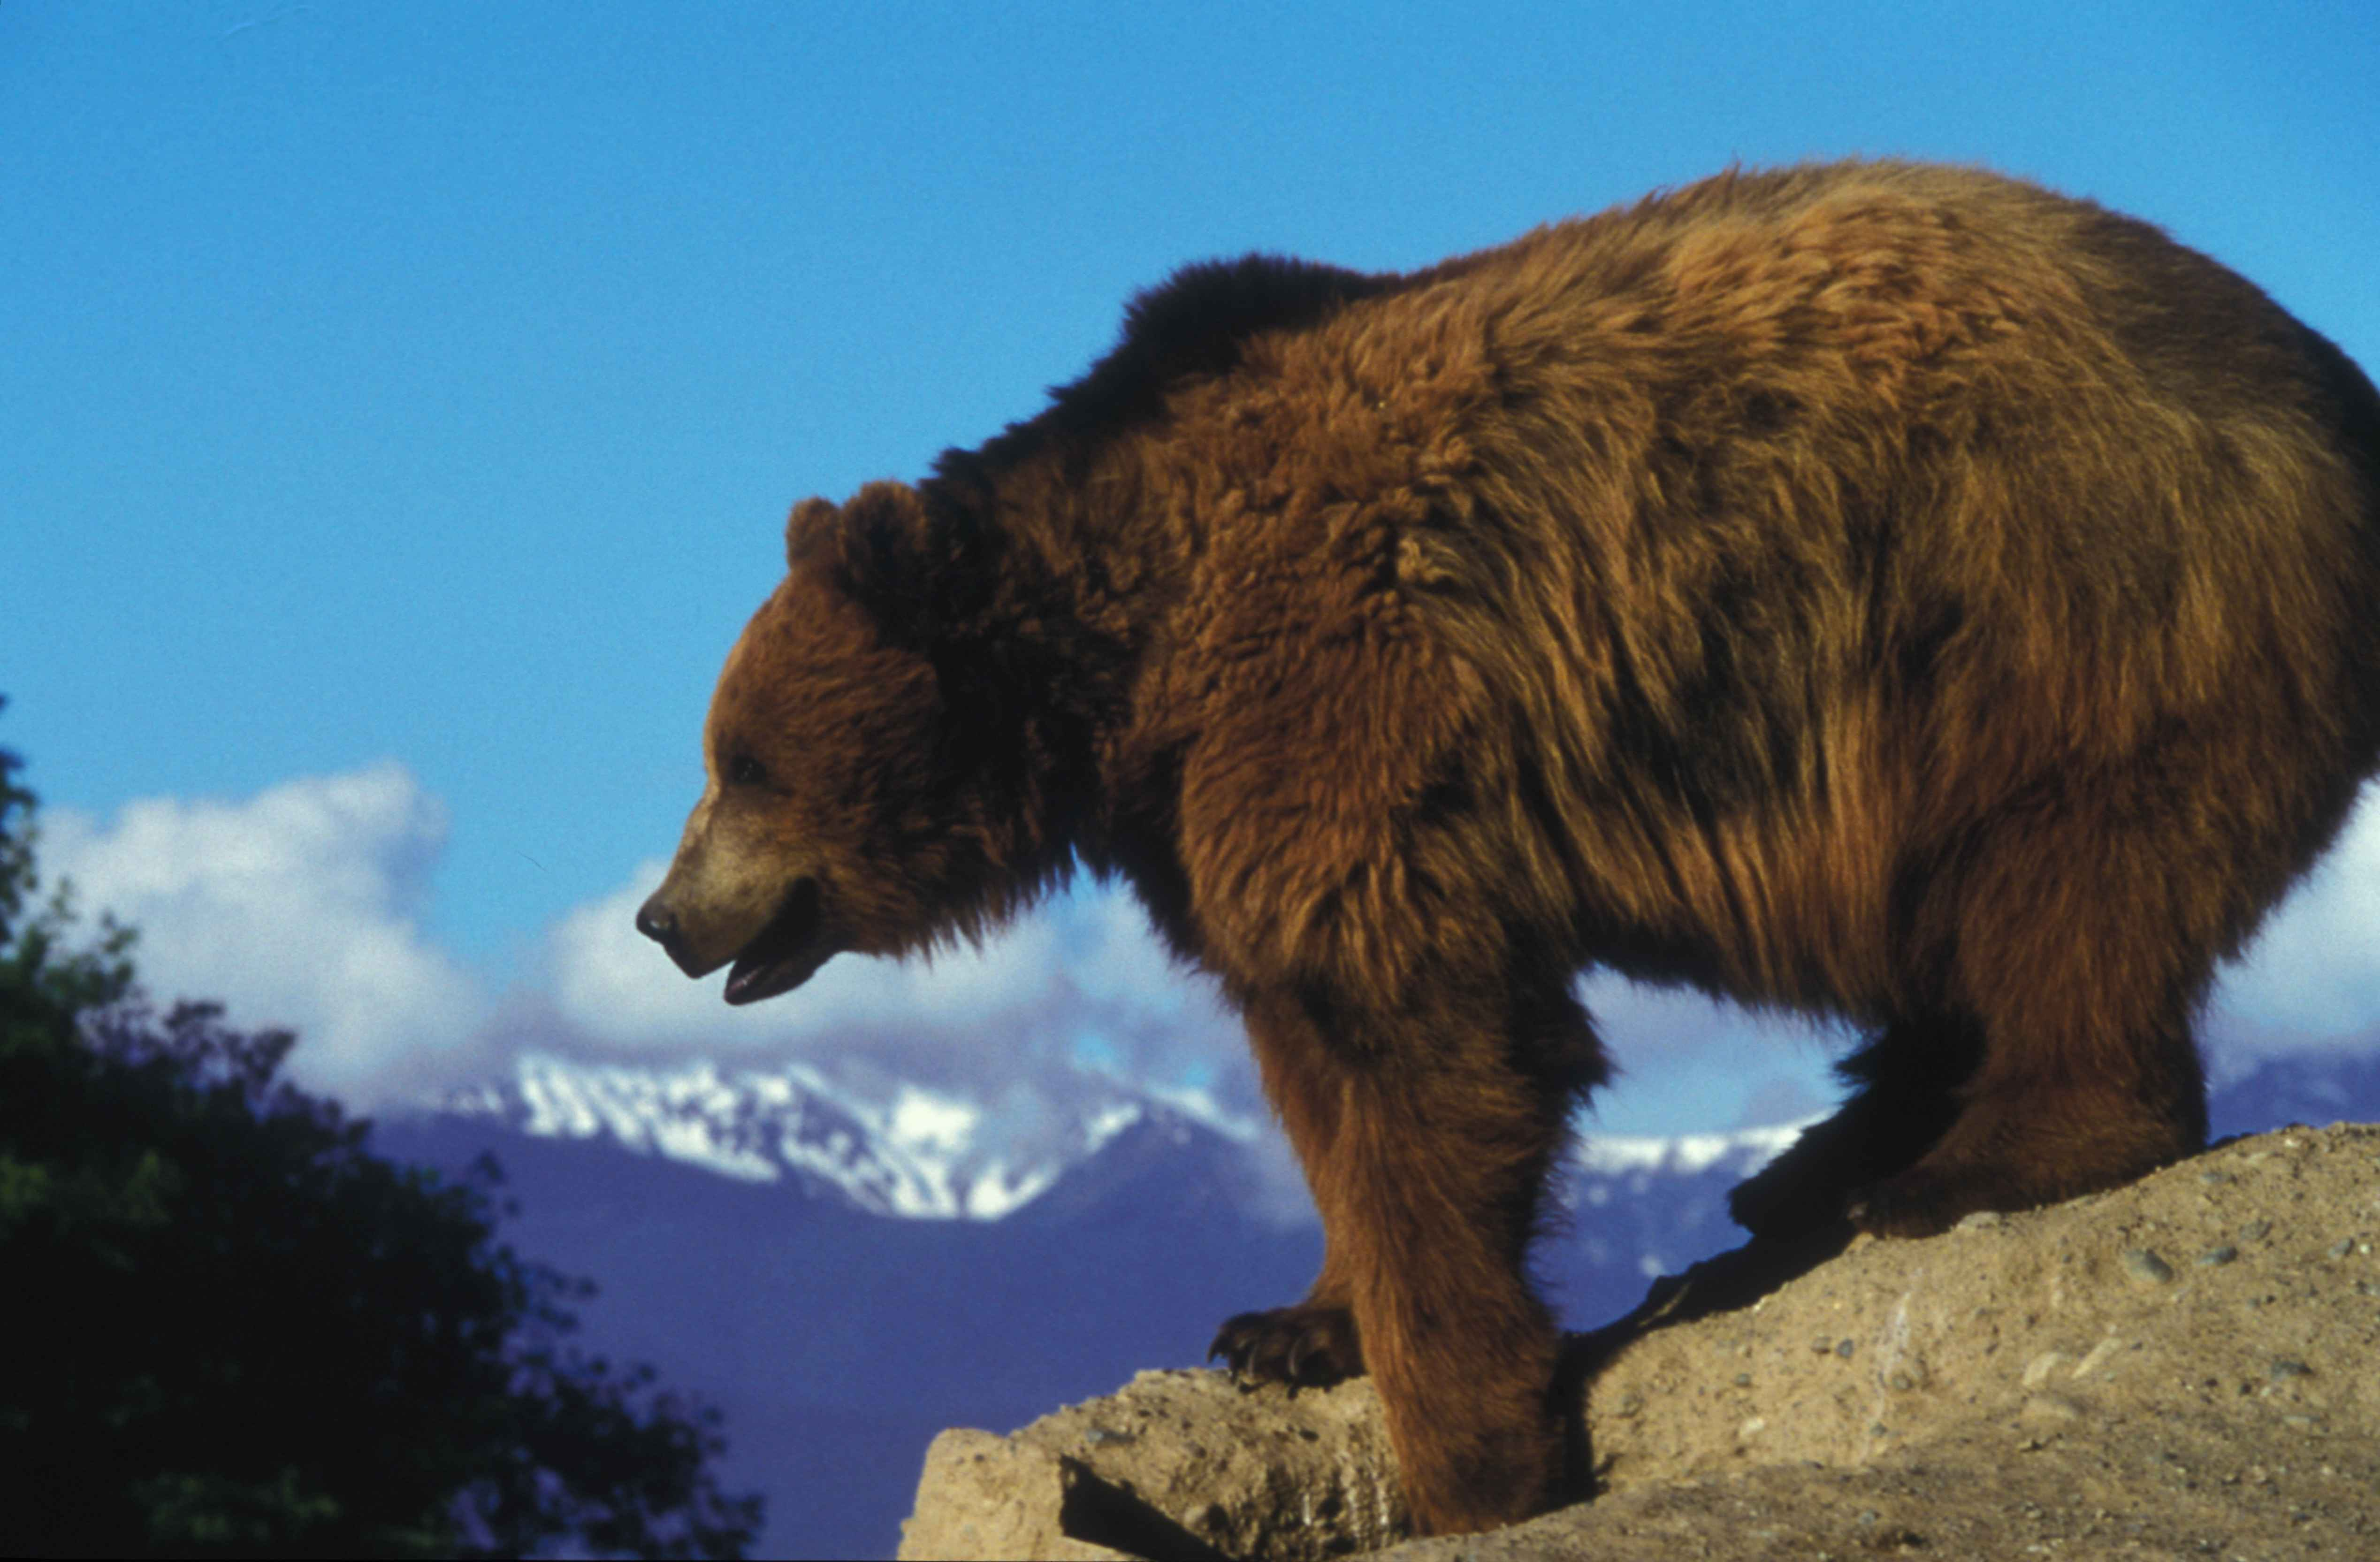 Taiga Animals : Grizzly Bear (Brown Bear)